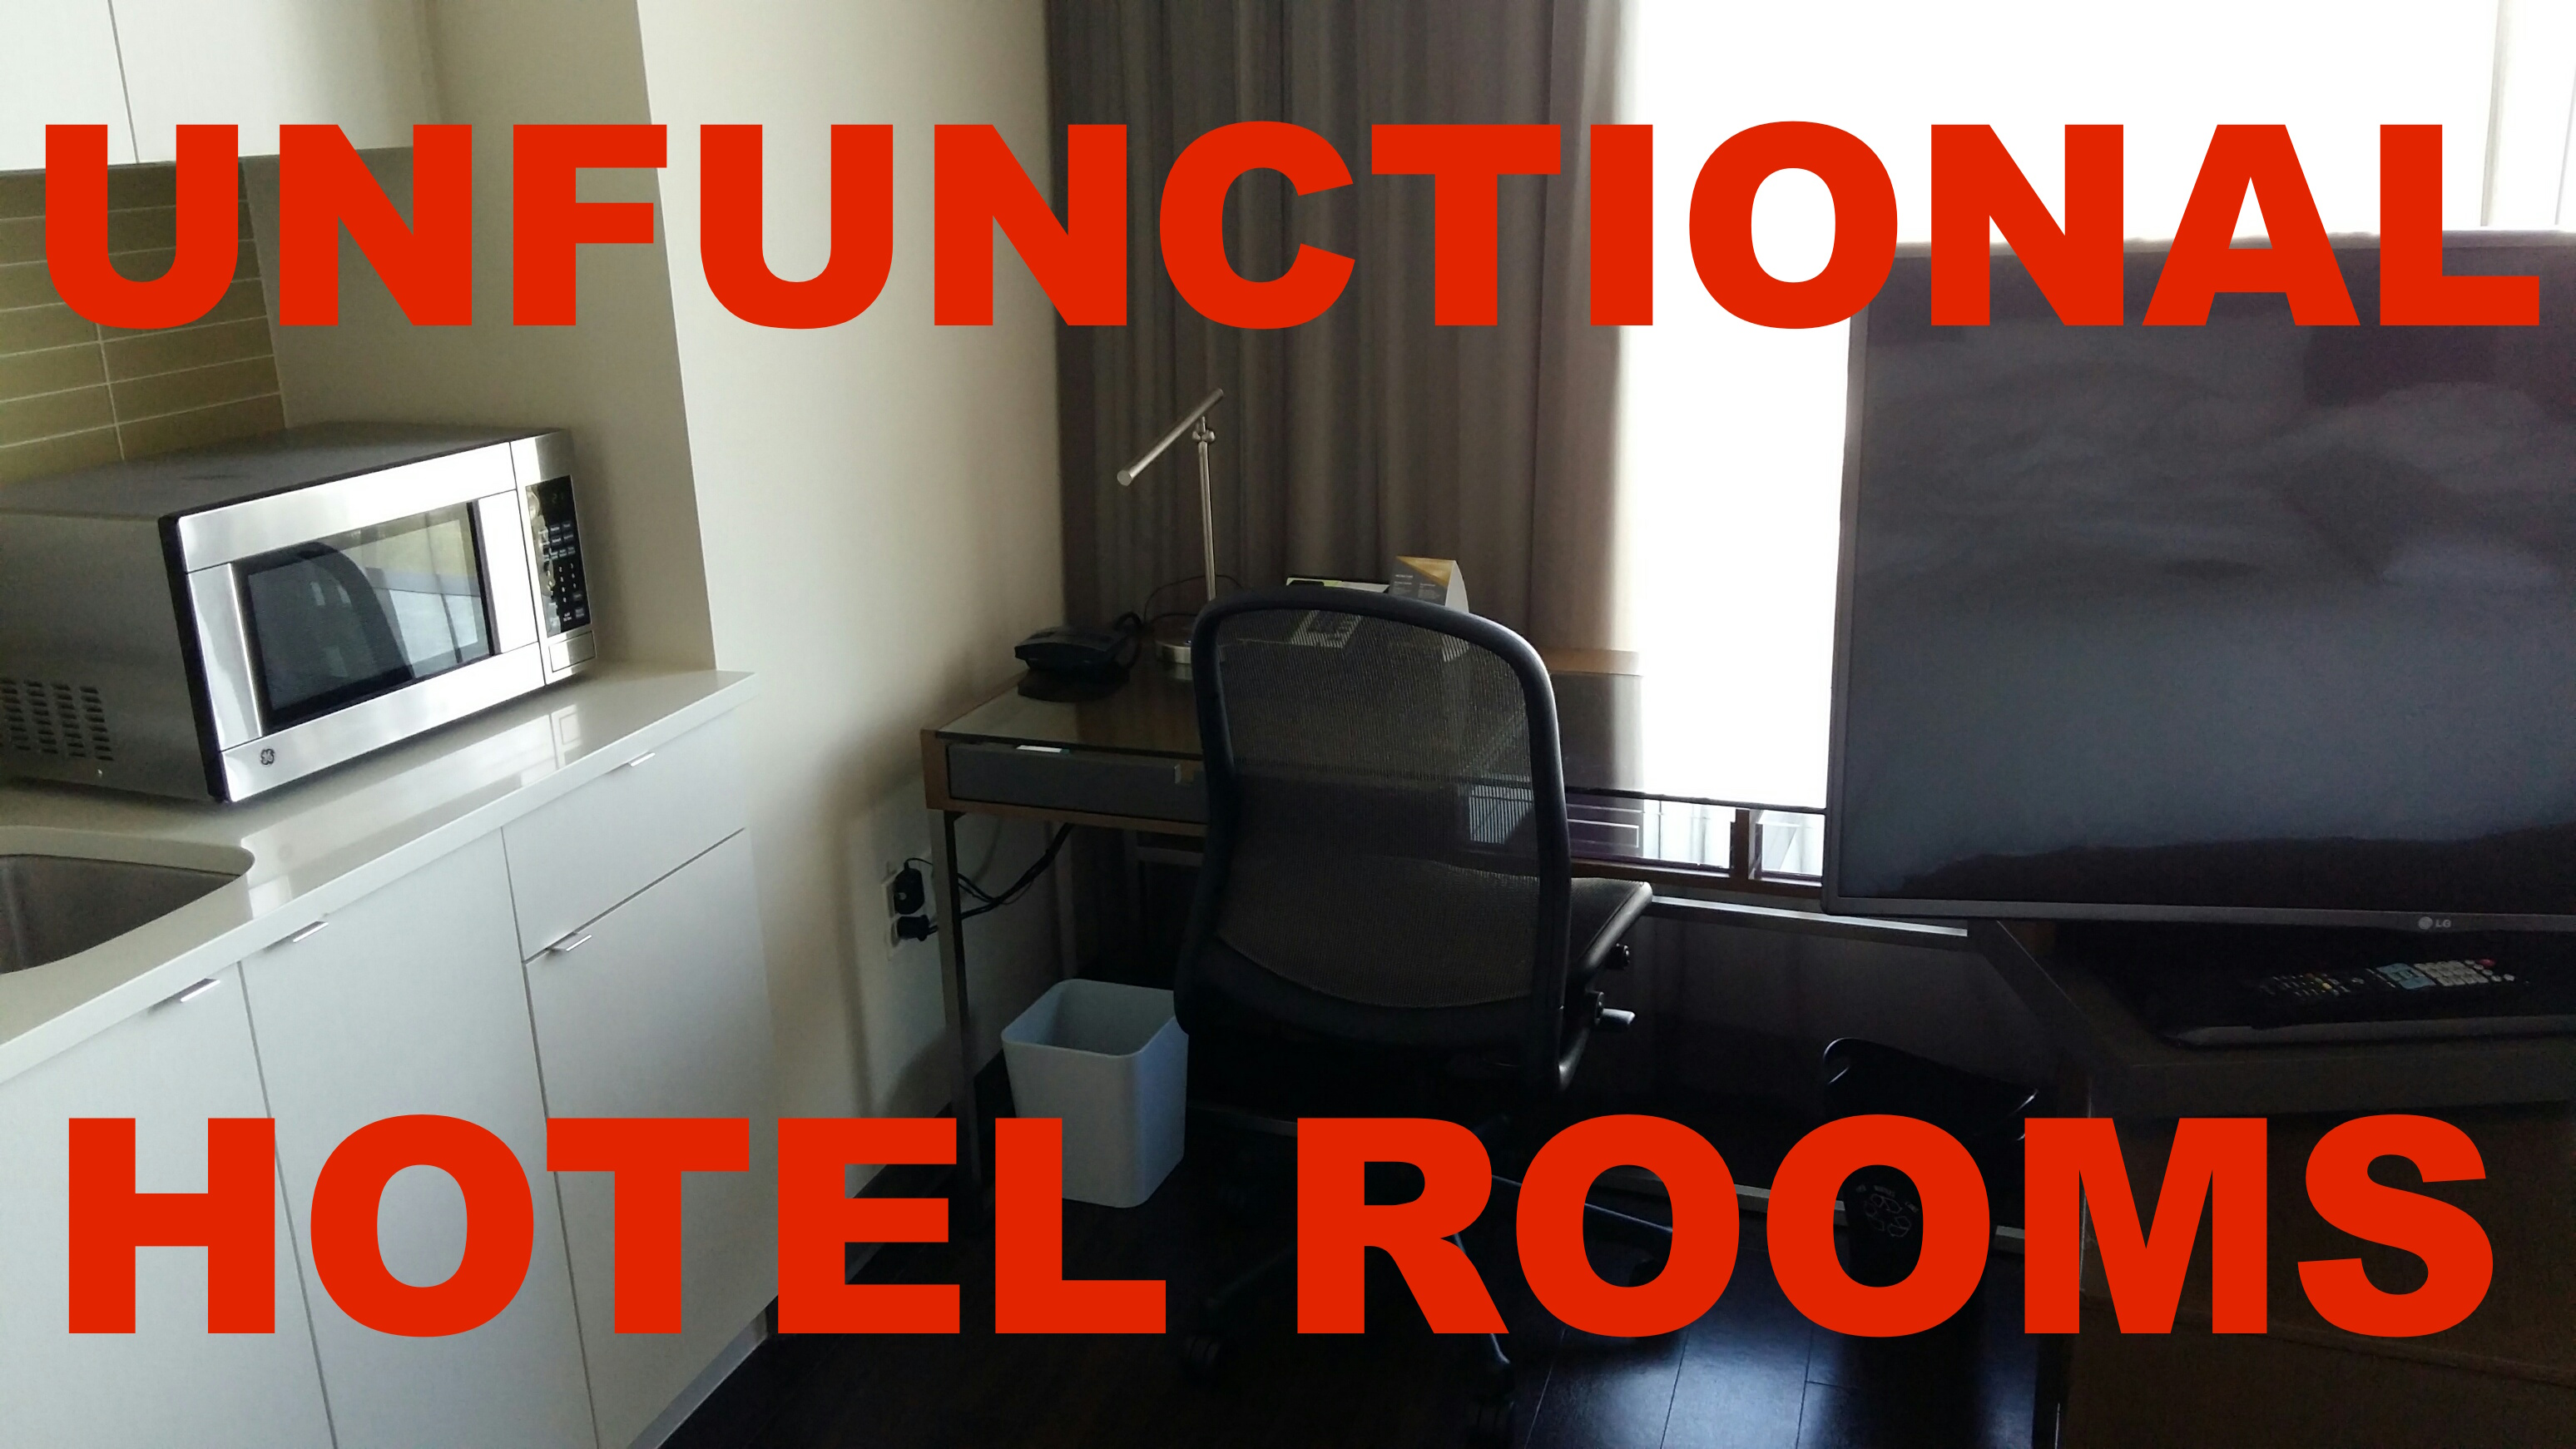 How To Avoid Hotels With Unfunctional Room Design And Missing Furniture Case Element Hotel Vancouver Metrotown Loyaltylobby